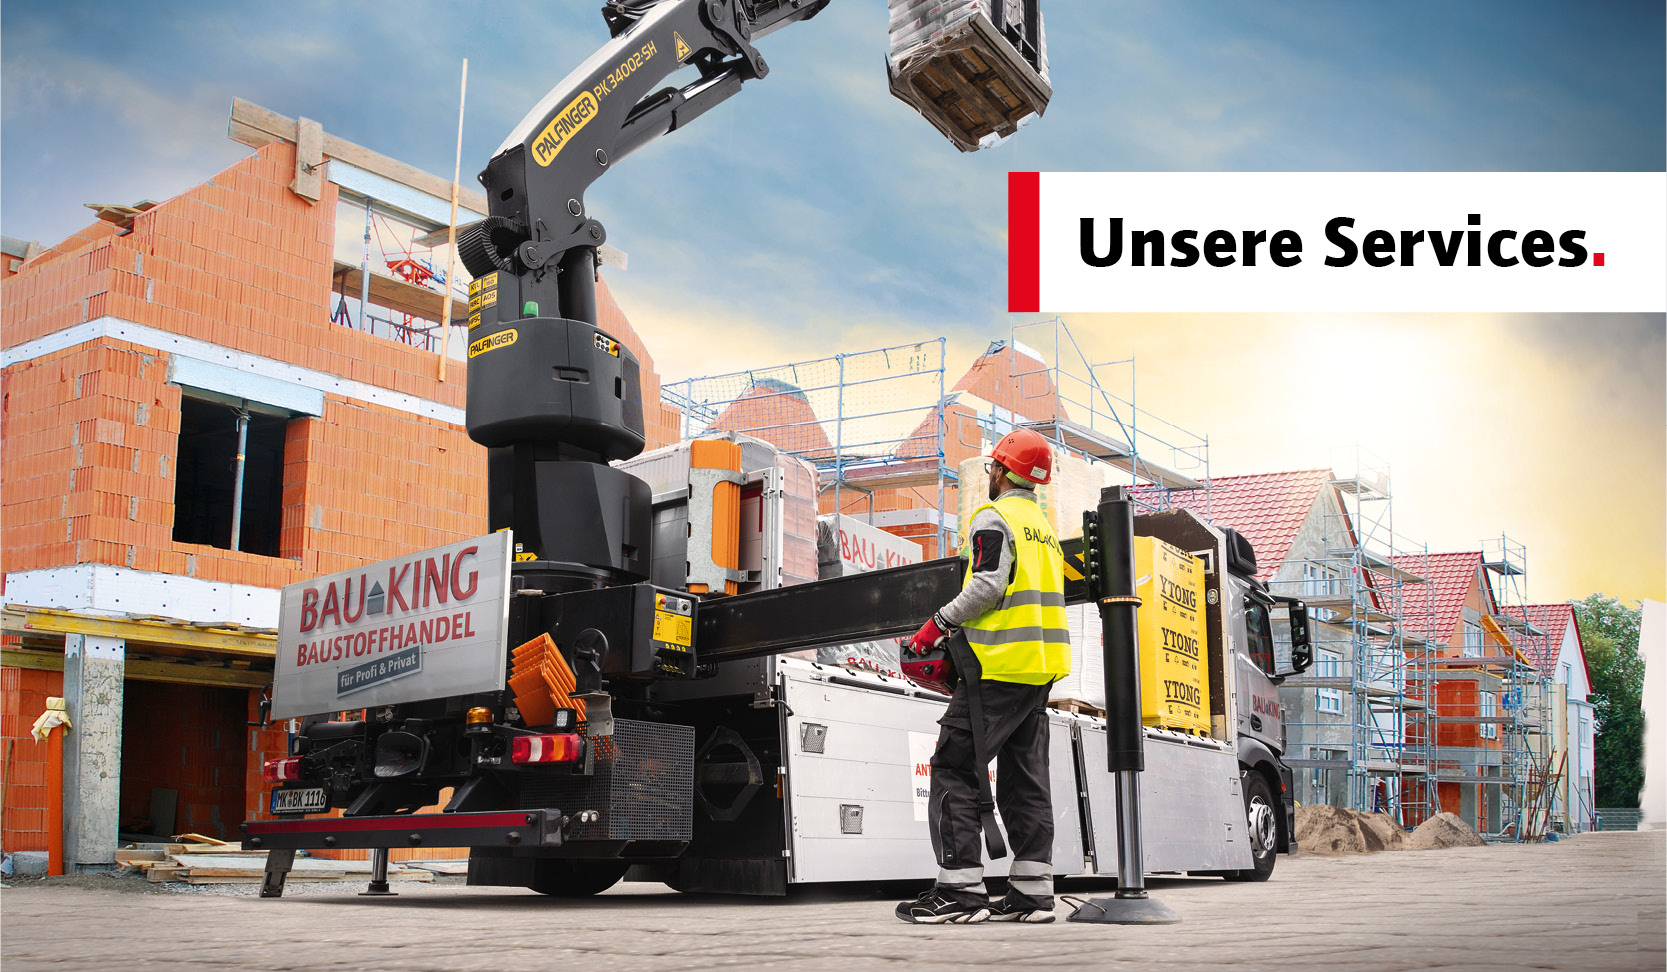 Unsere Services